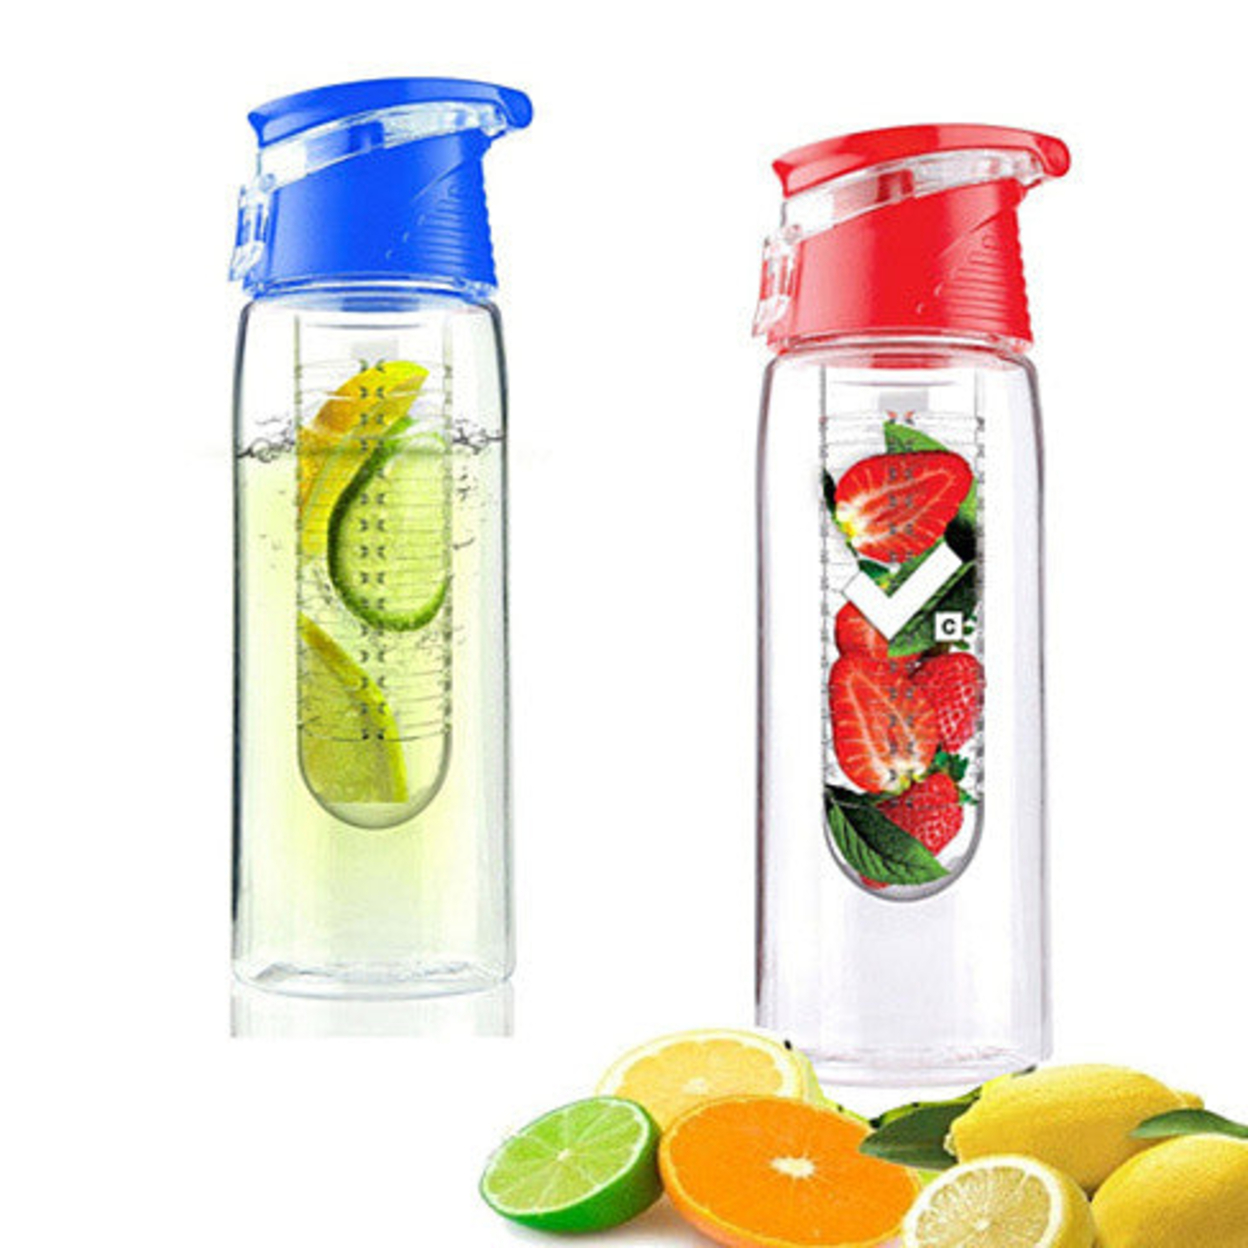 Fruit Cola Bottle A Fruit Infuser Healthy Drink Bottle - Black 54b4d254683d6fd151000116